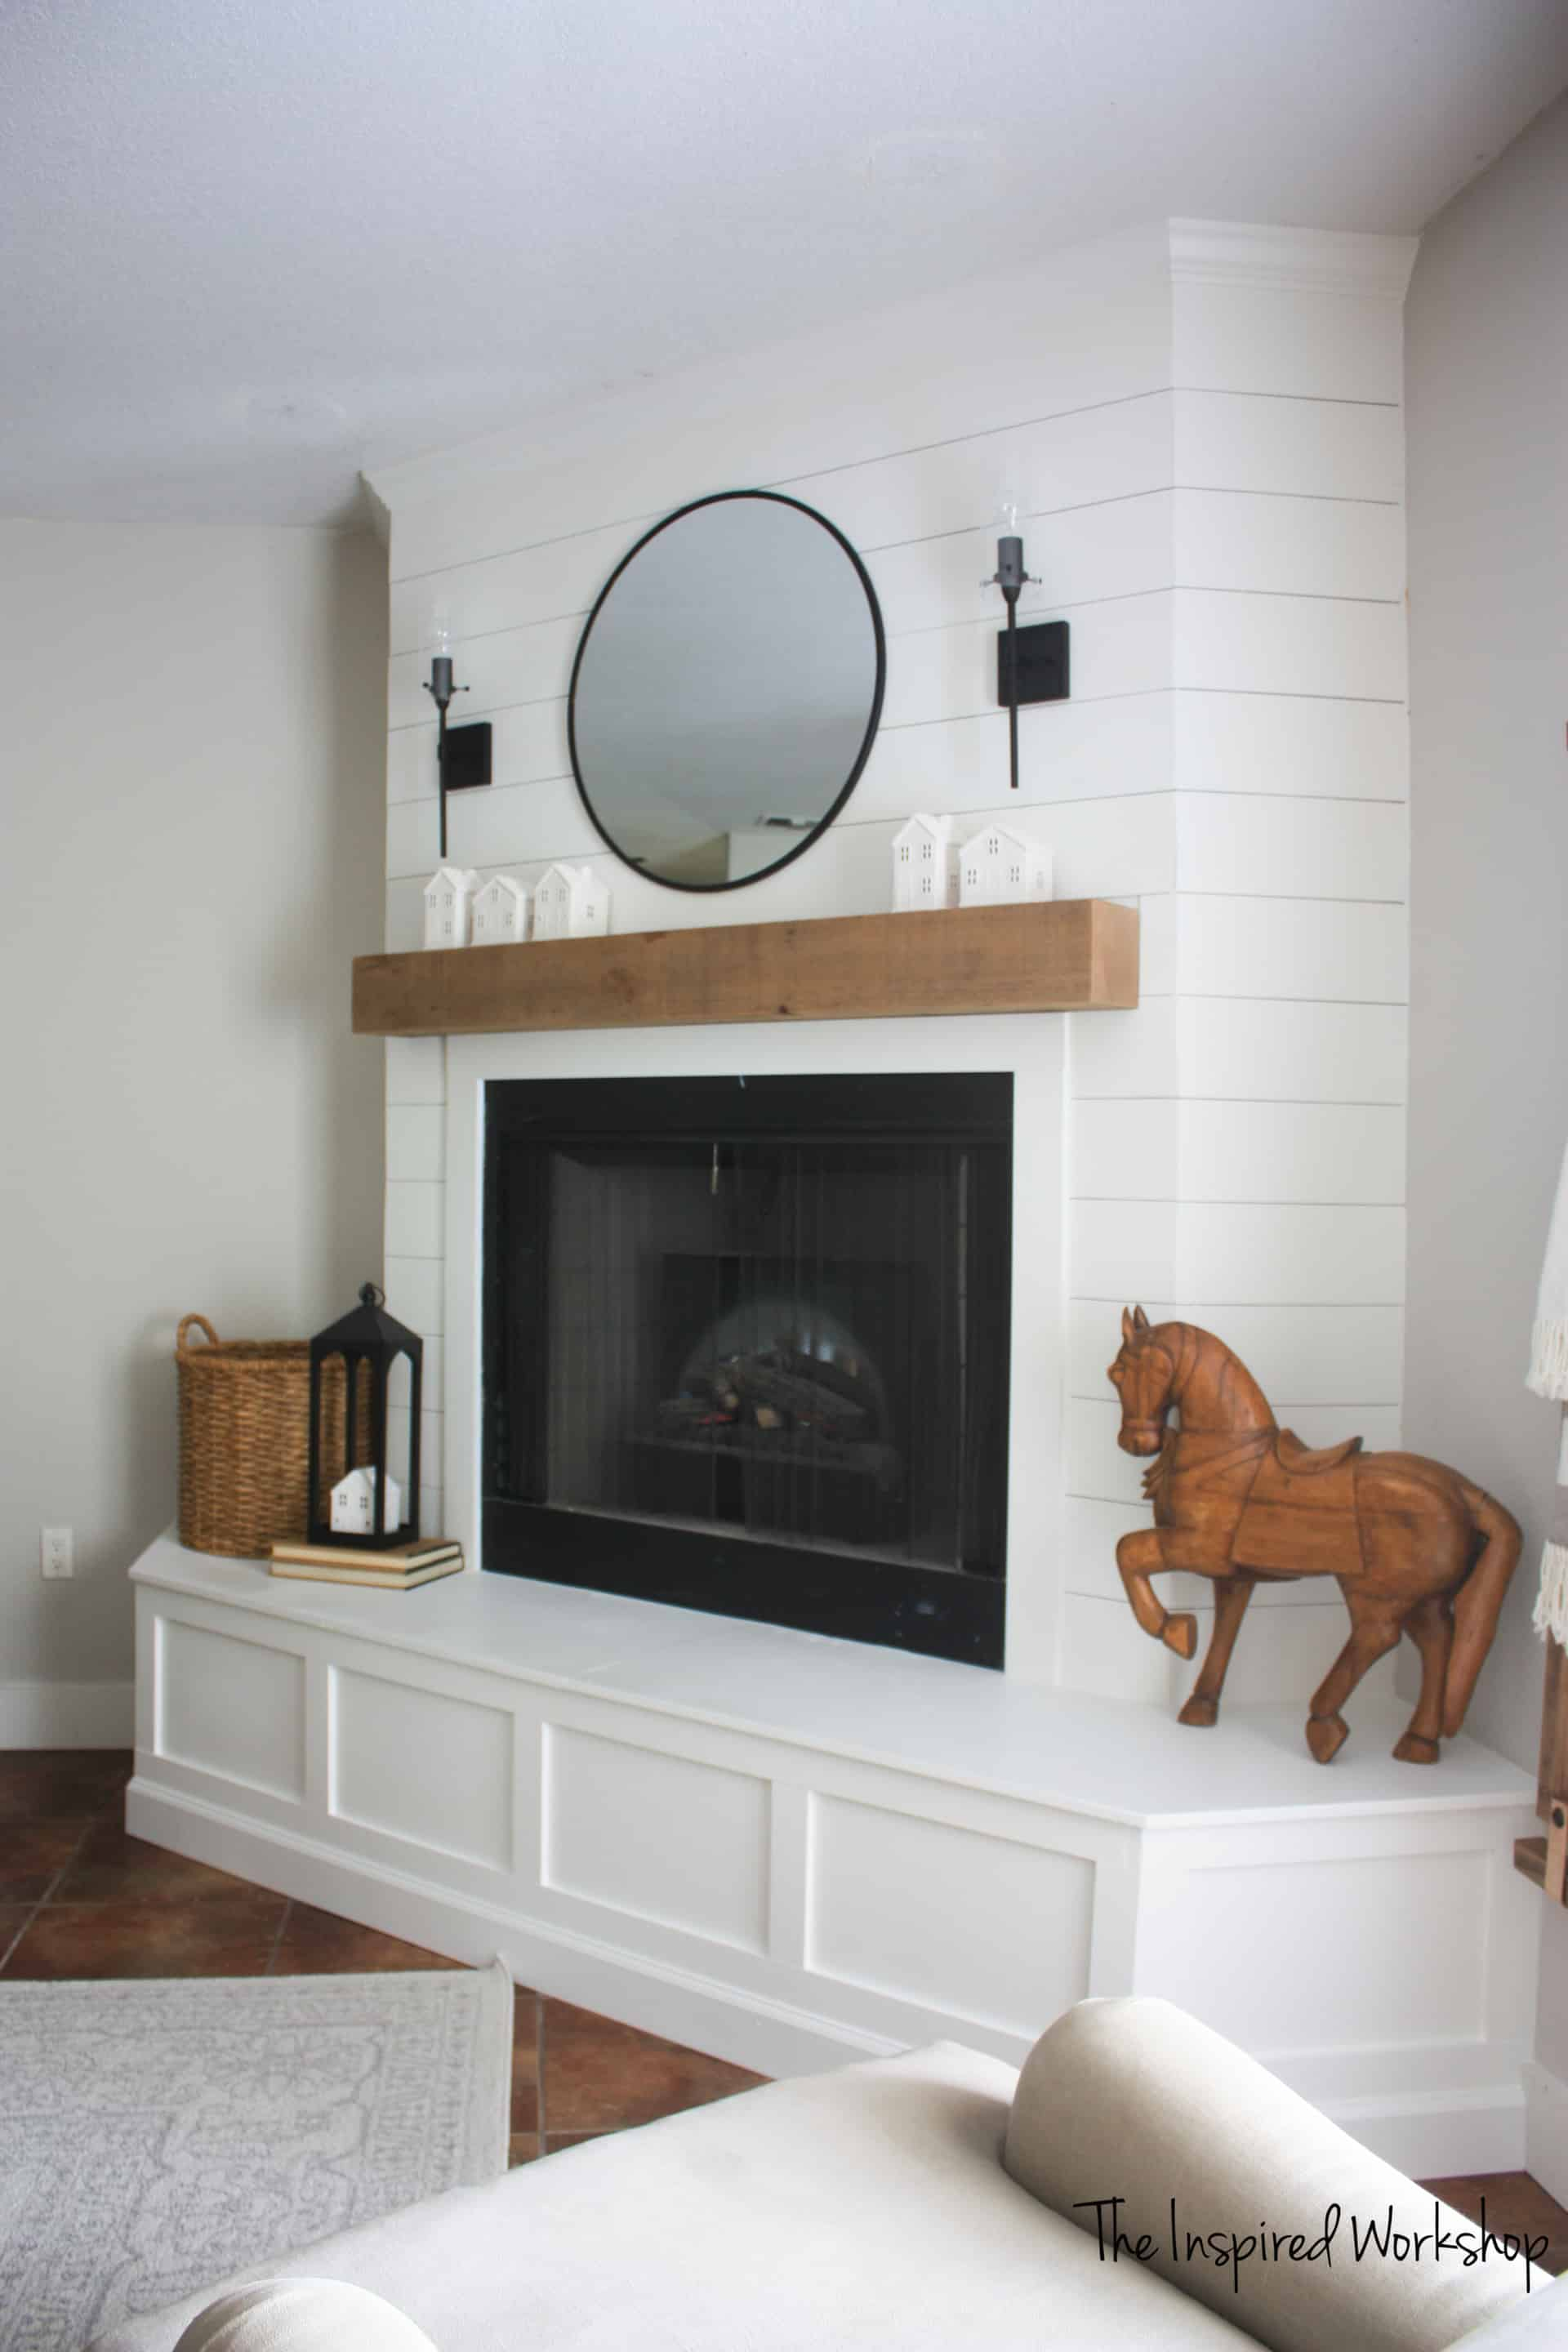 DIY Fireplace Makeover shown from the side